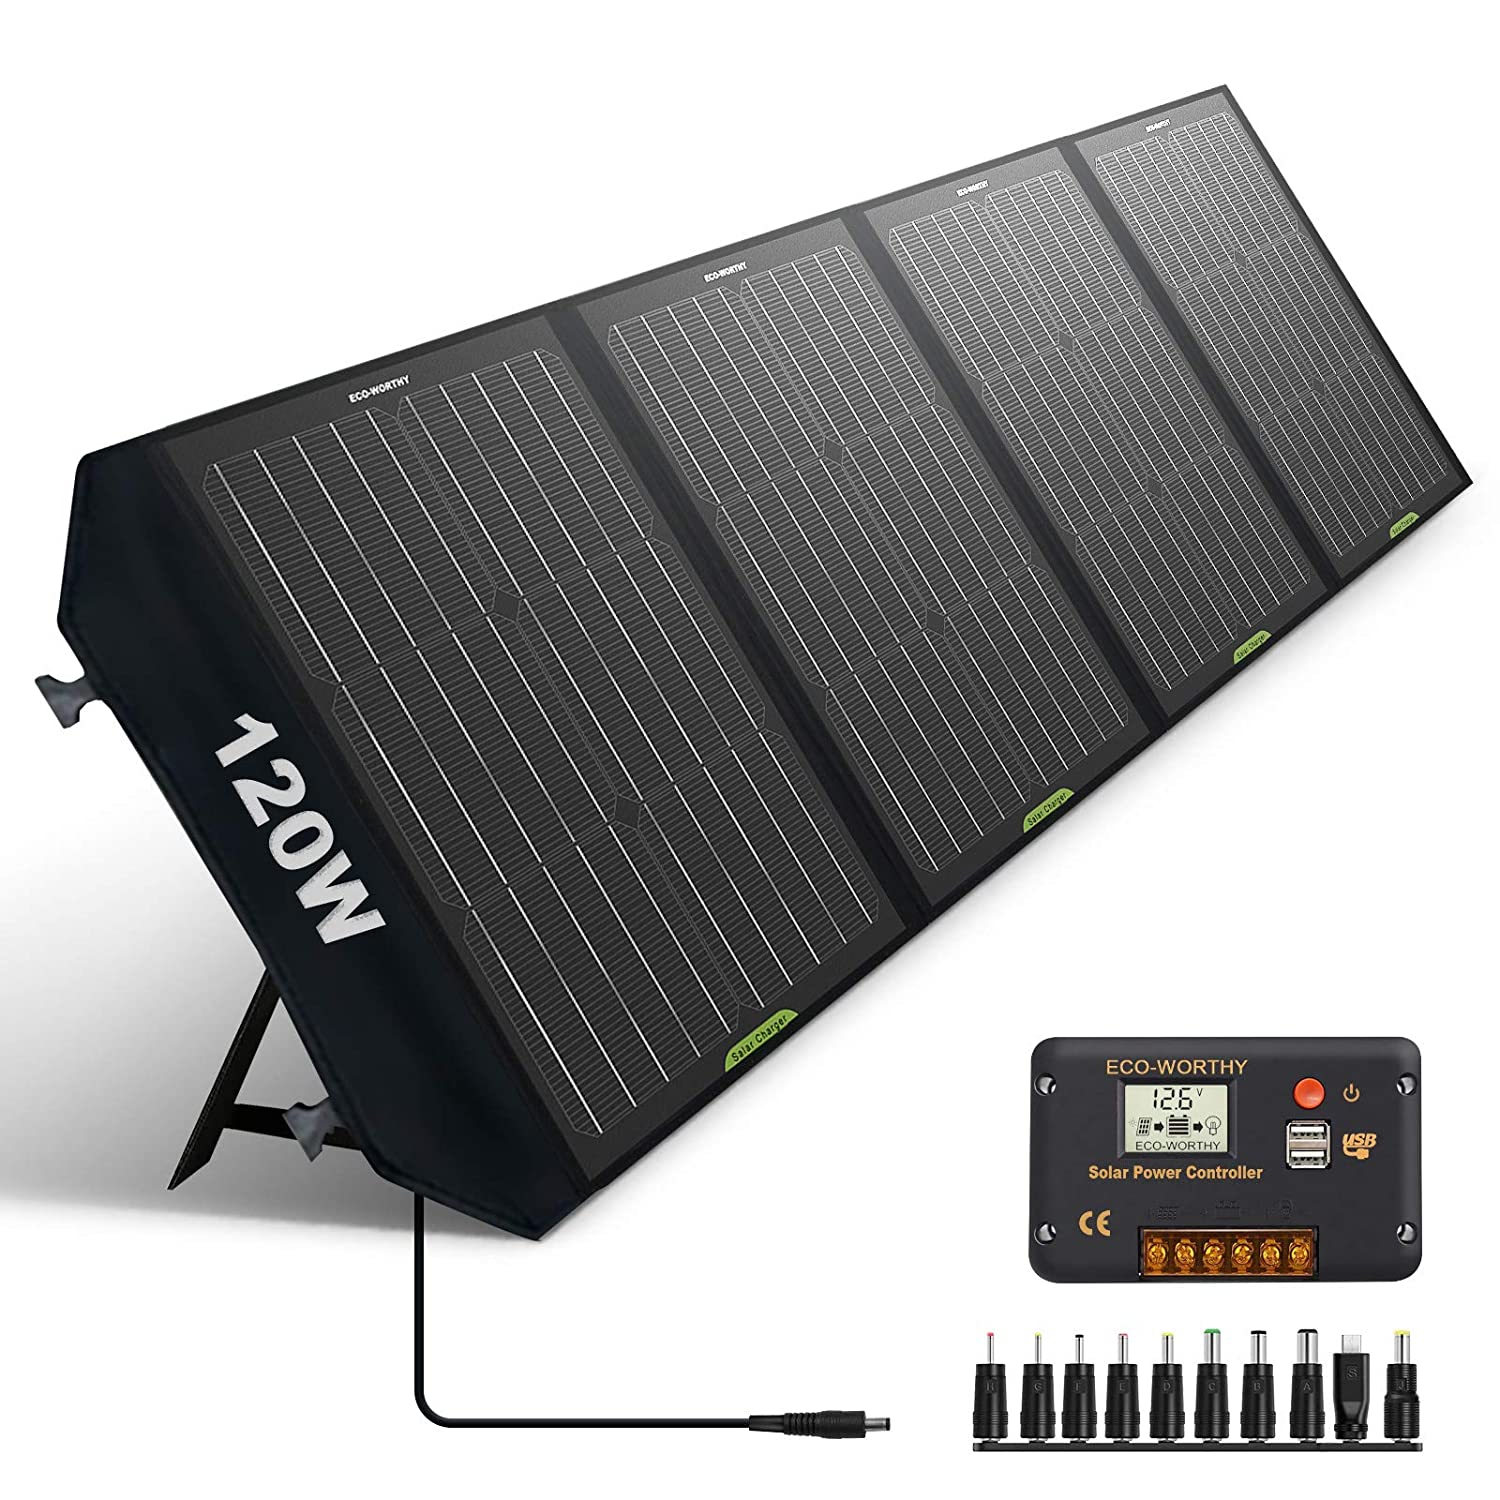 ECO-WORTHY 120W Foldable Solar Panel Charger